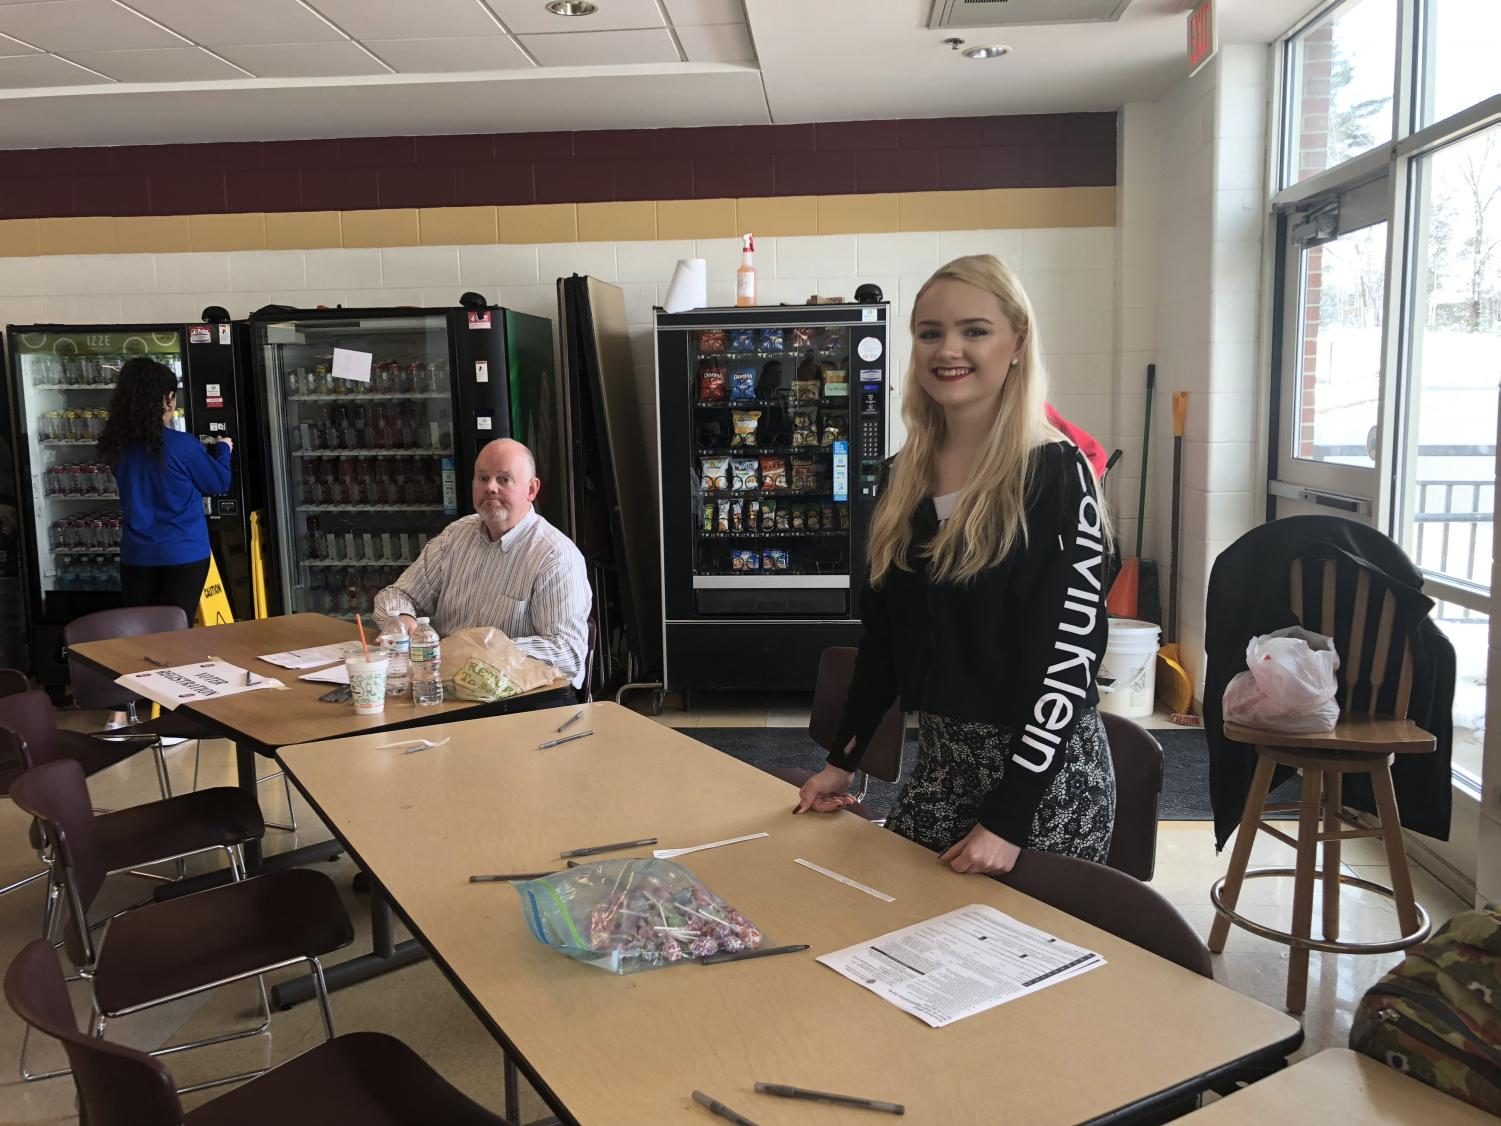 Junior Rebecca Snow helped students in registering to vote during lunch on March 14.